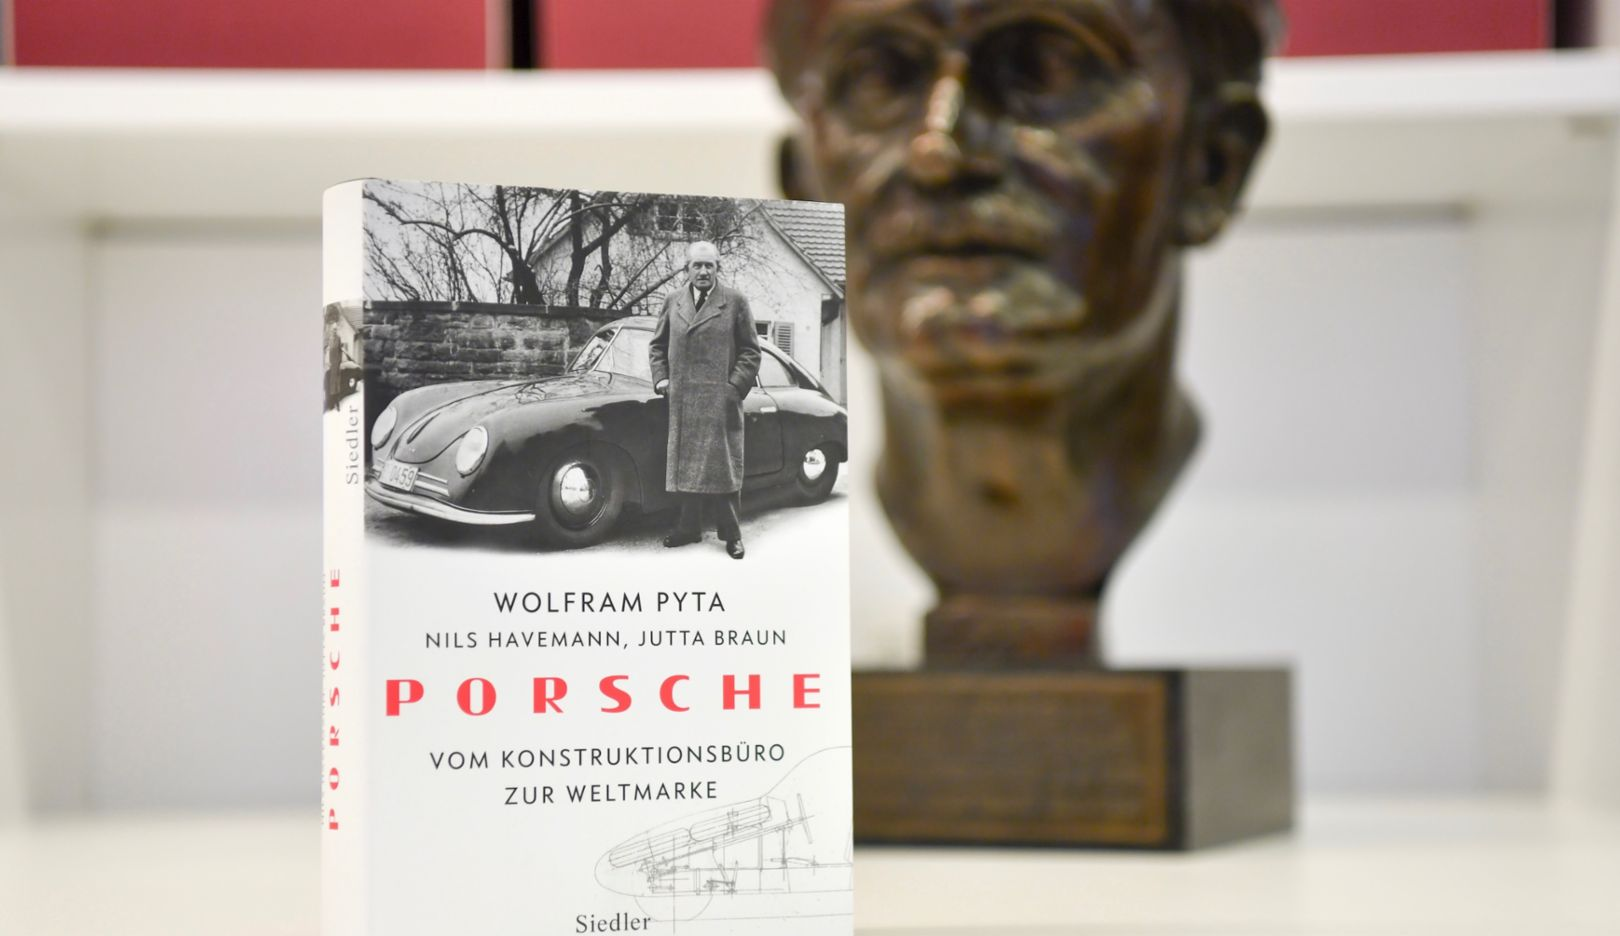 The history of the Porsche engineering office, 2017, Porsche AG